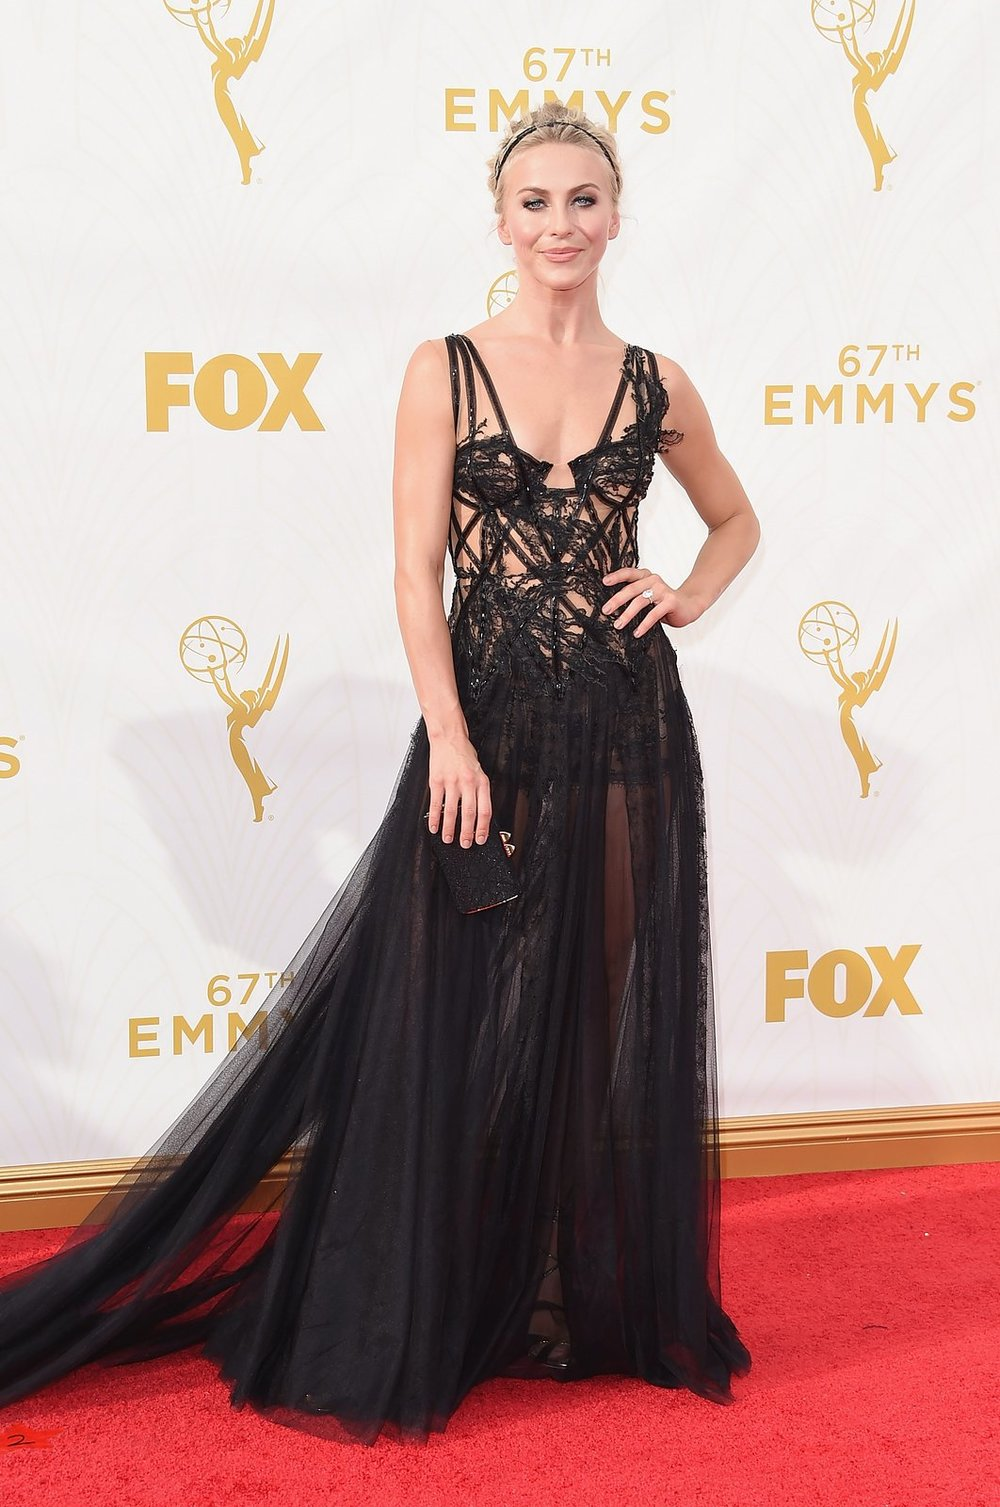 julianne-hough-emmys-red-carpet-2015.jpg